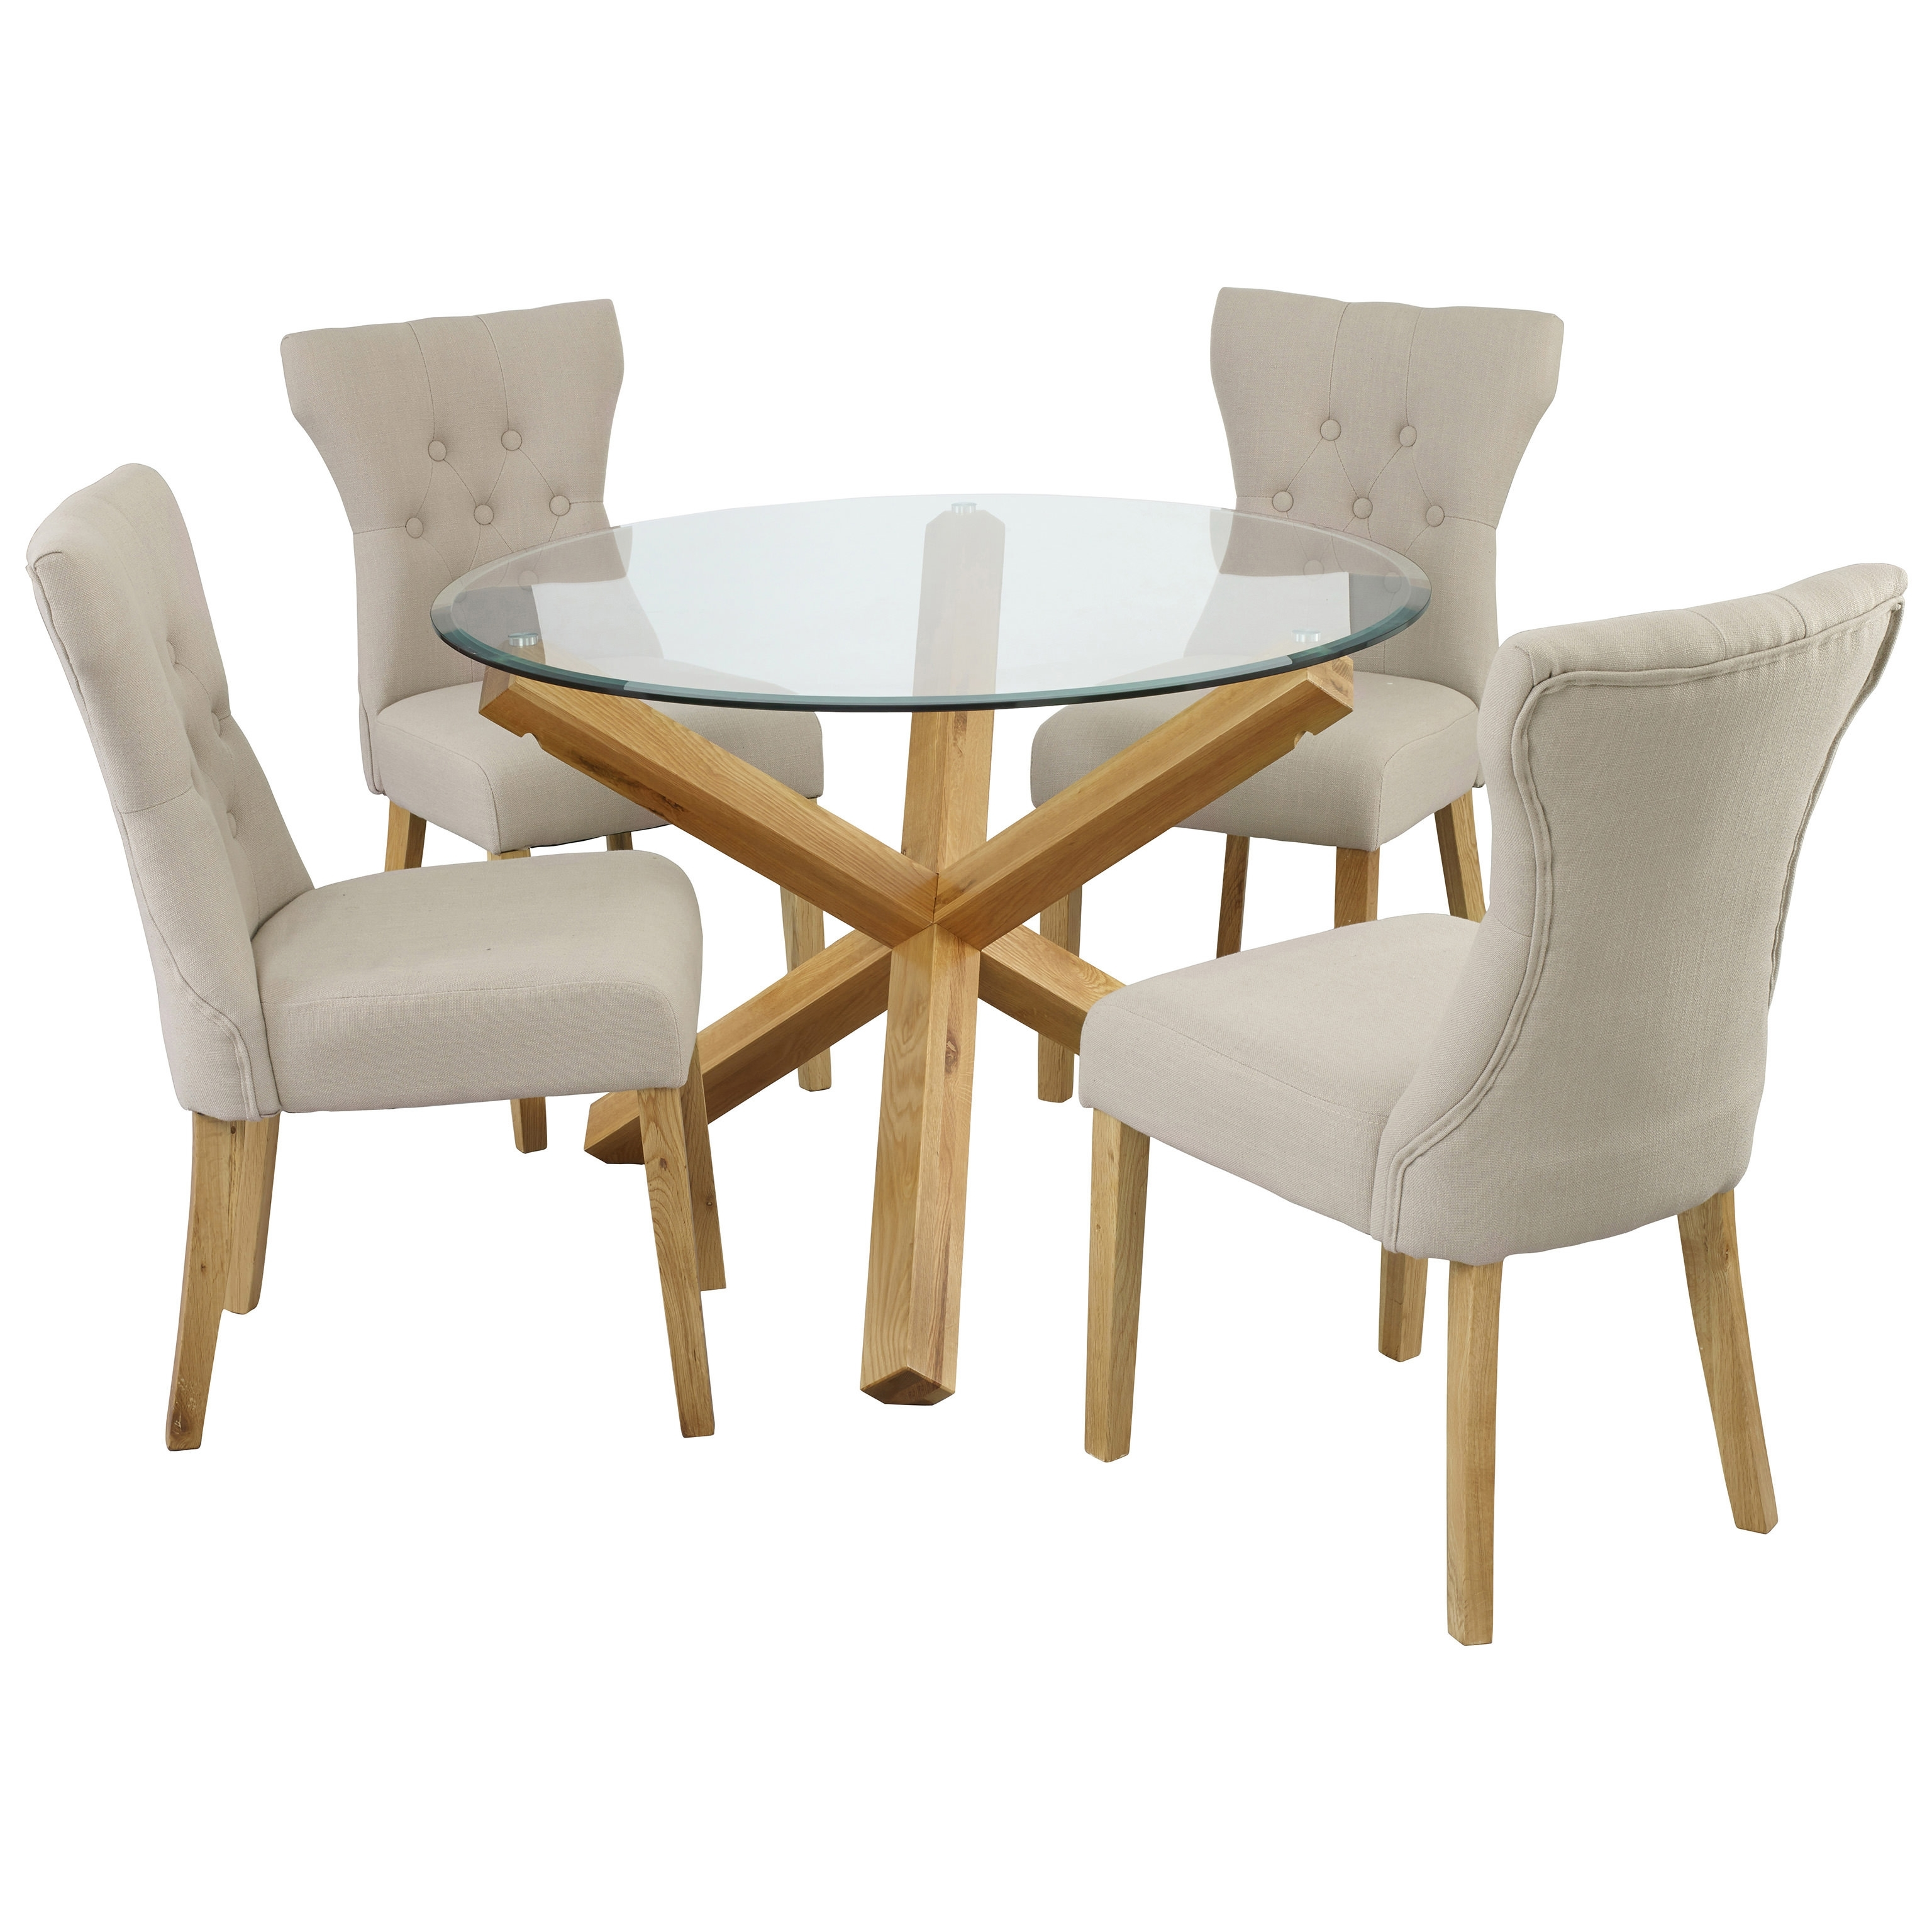 Widely Used Oak & Glass Round Dining Table And Chair Set With 4 Fabric Seats Intended For Oak Dining Tables And Fabric Chairs (View 25 of 25)